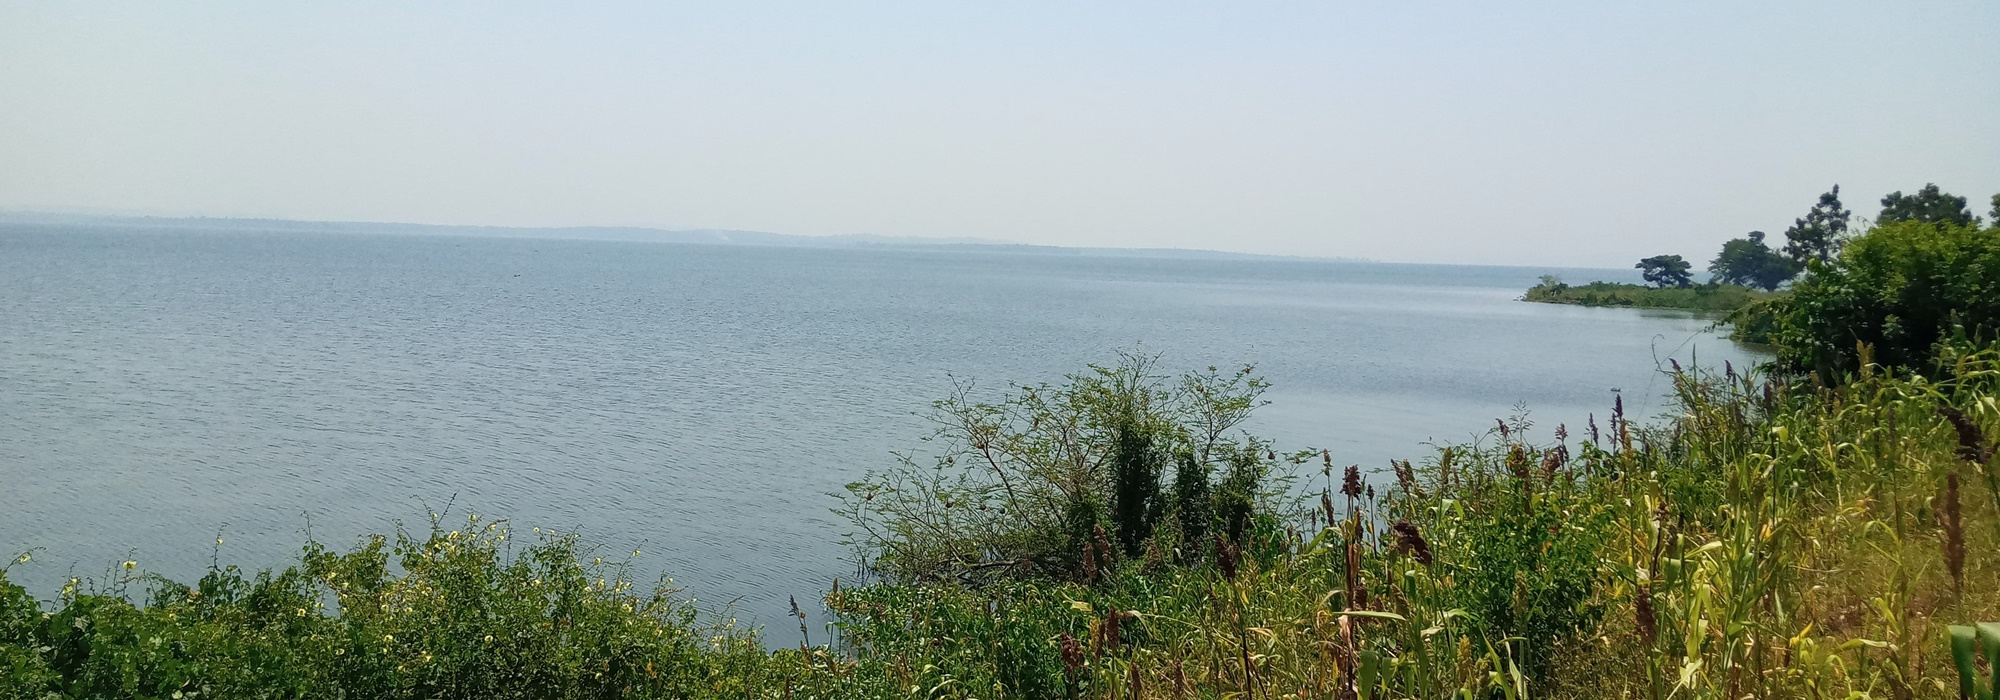 19.5 TITLED LAKESHORE LAND FOR SALE 20KM FROM JINJA CITY